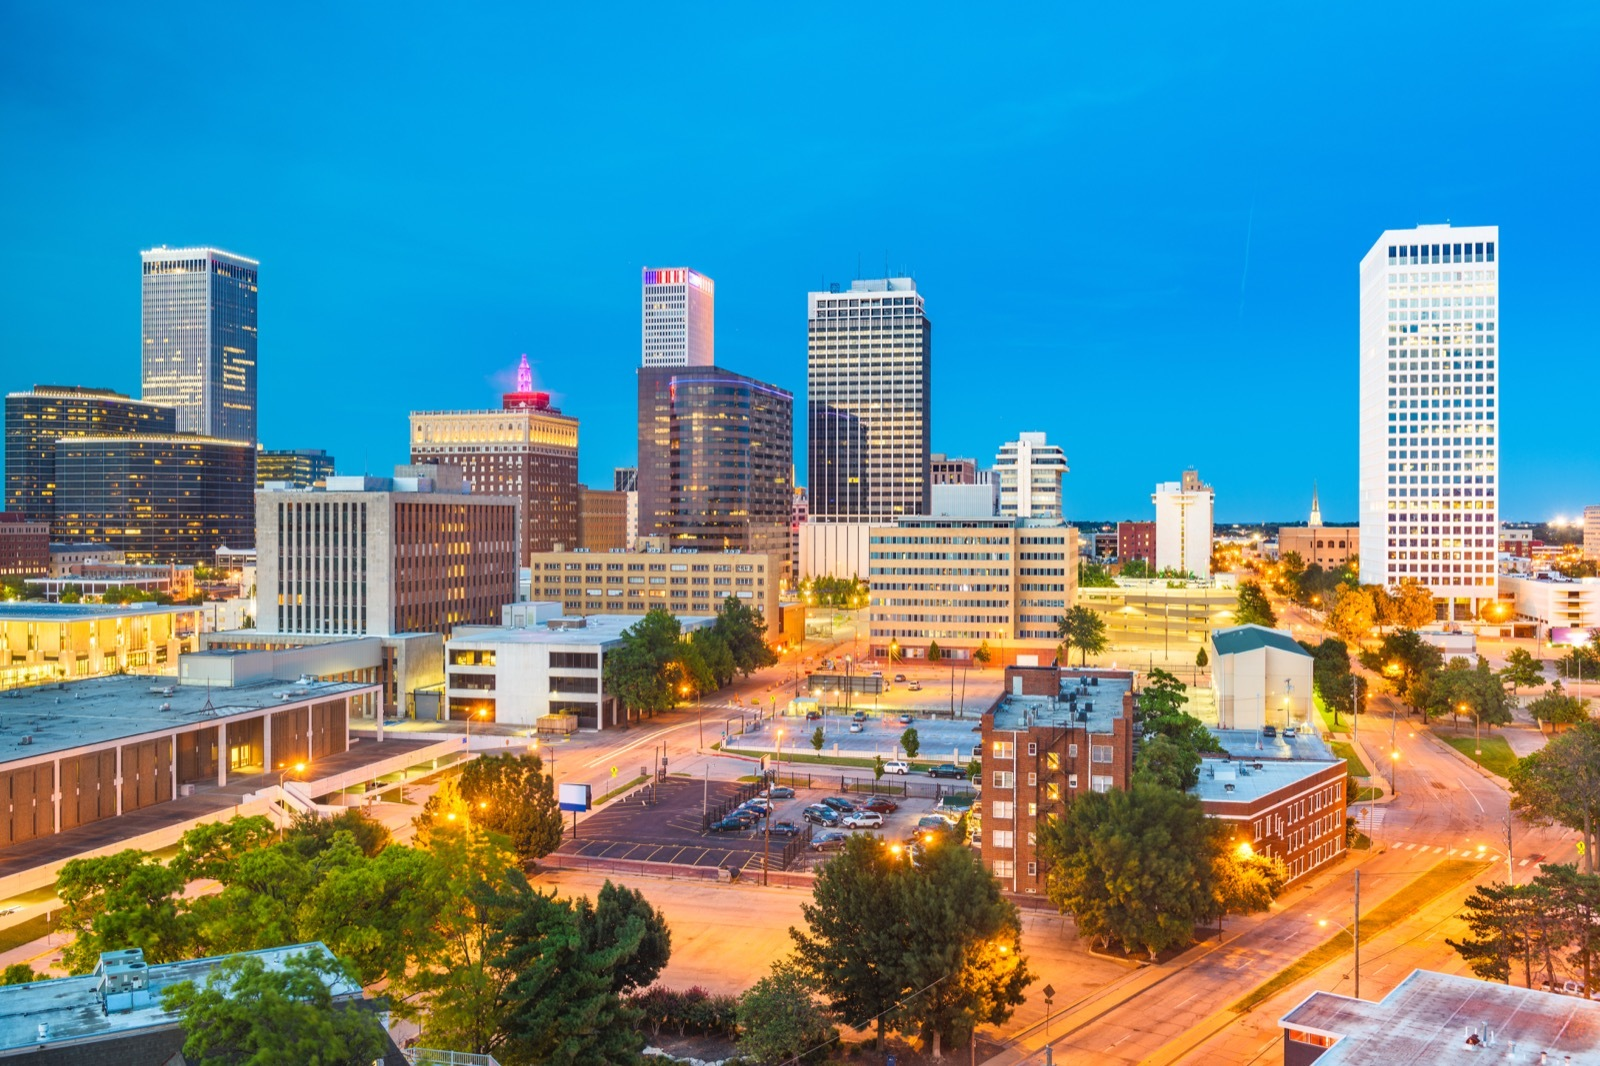 Downtown-Tulsa-during-twilight.jpg?mtime=20200115143423#asset:107702